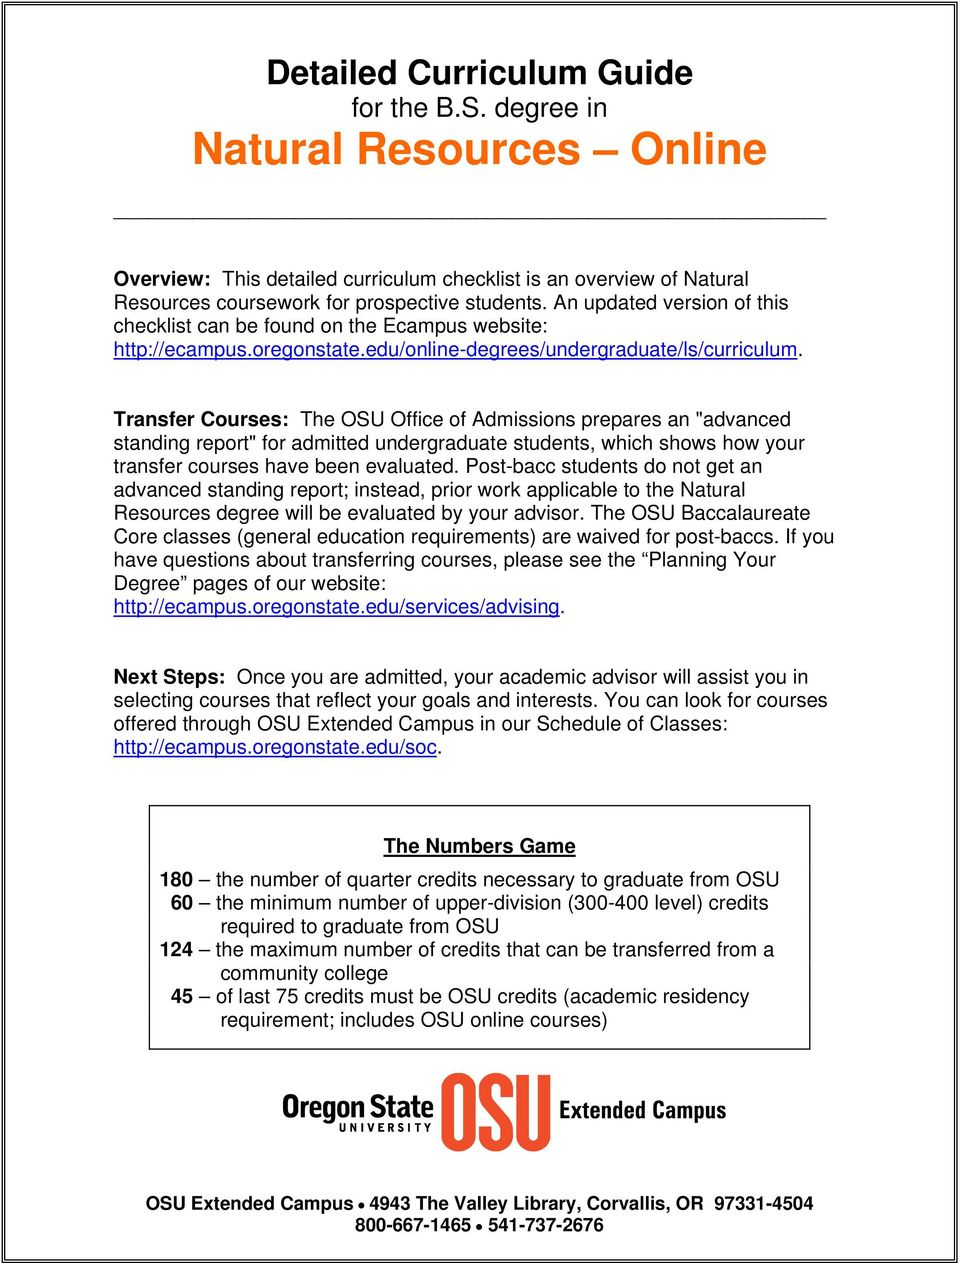 "Transfer Courses: The OSU Office of Admissions prepares an ""advanced standing report"" for admitted undergraduate students, which shows how your transfer courses have been evaluated."